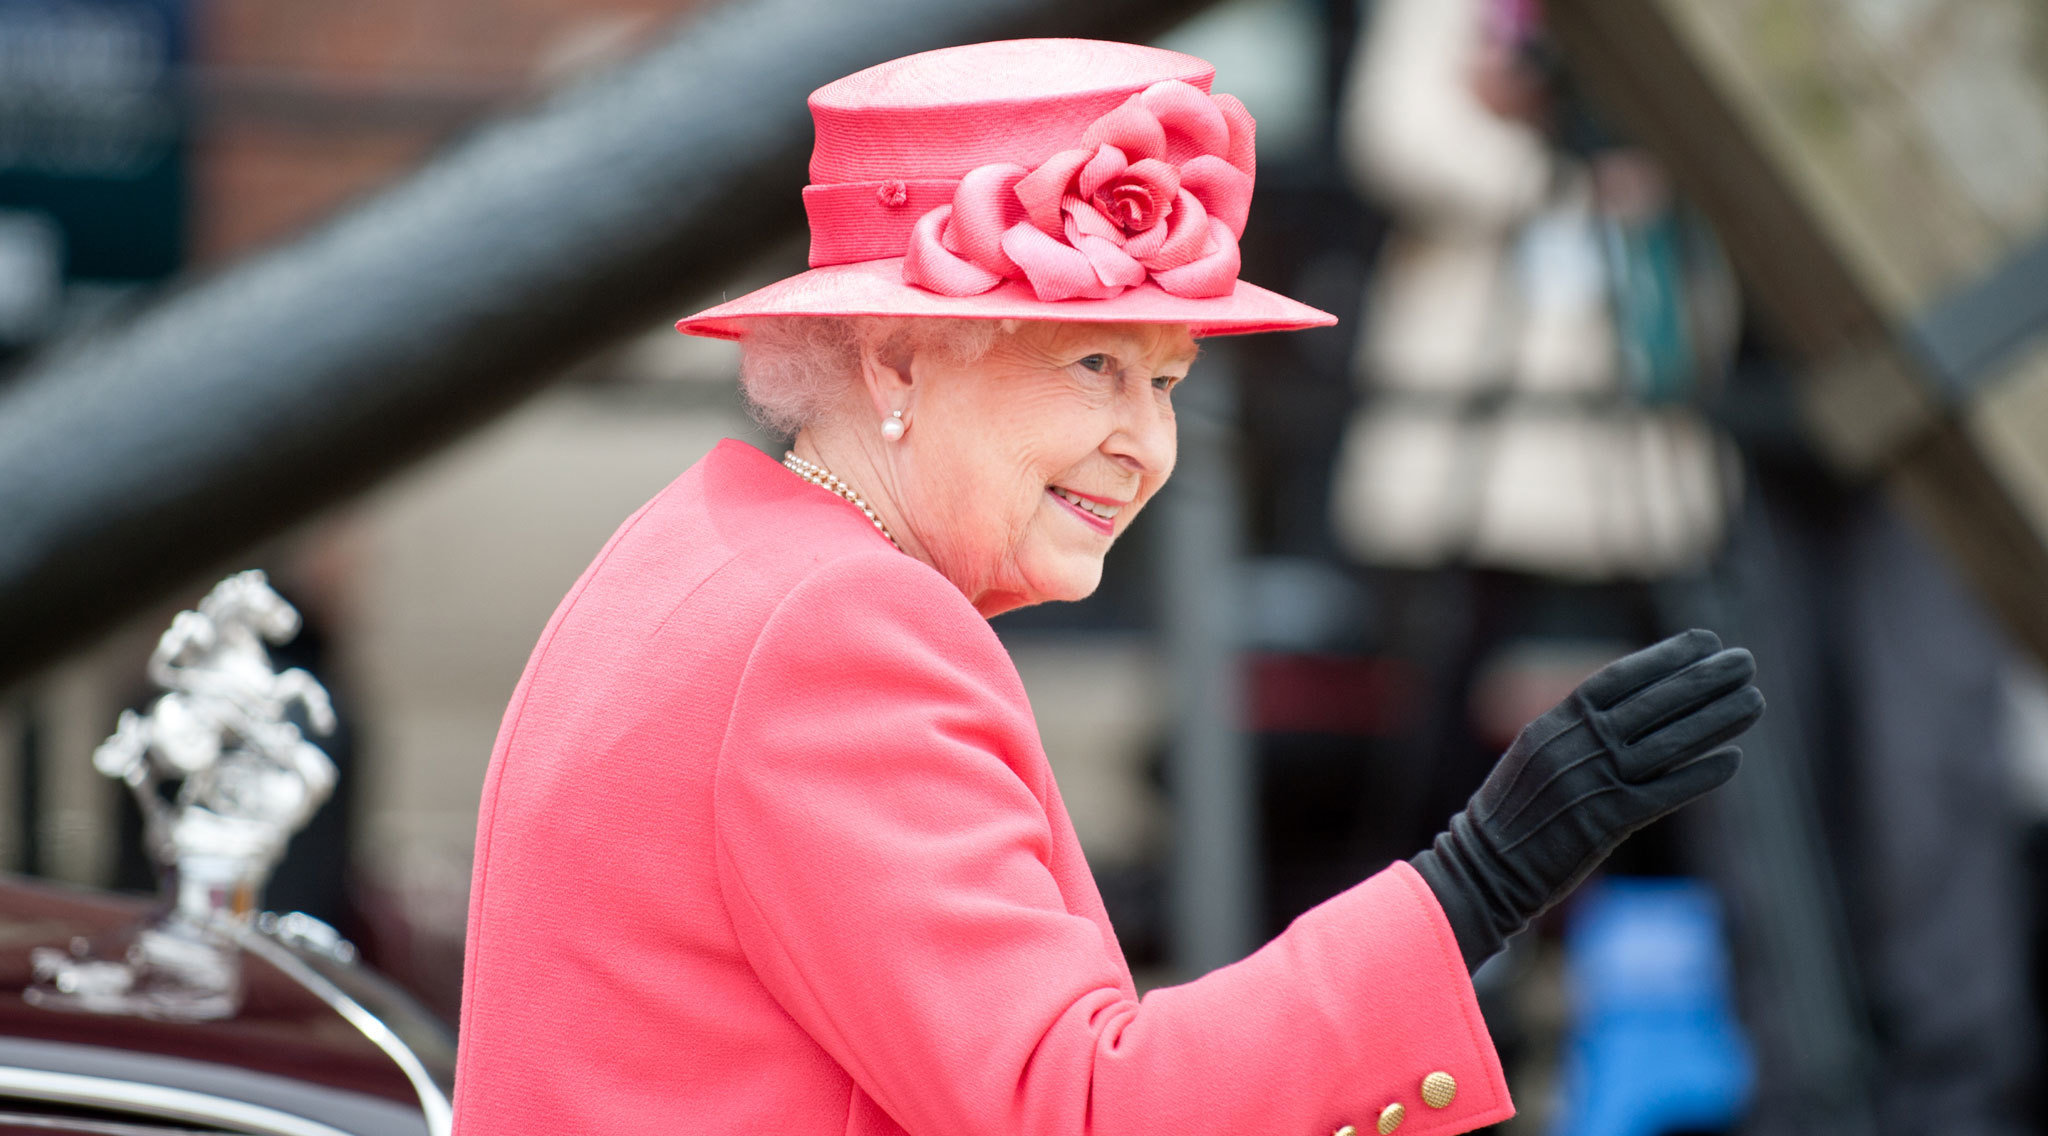 This year's London Marathon will be officially started by The Queen